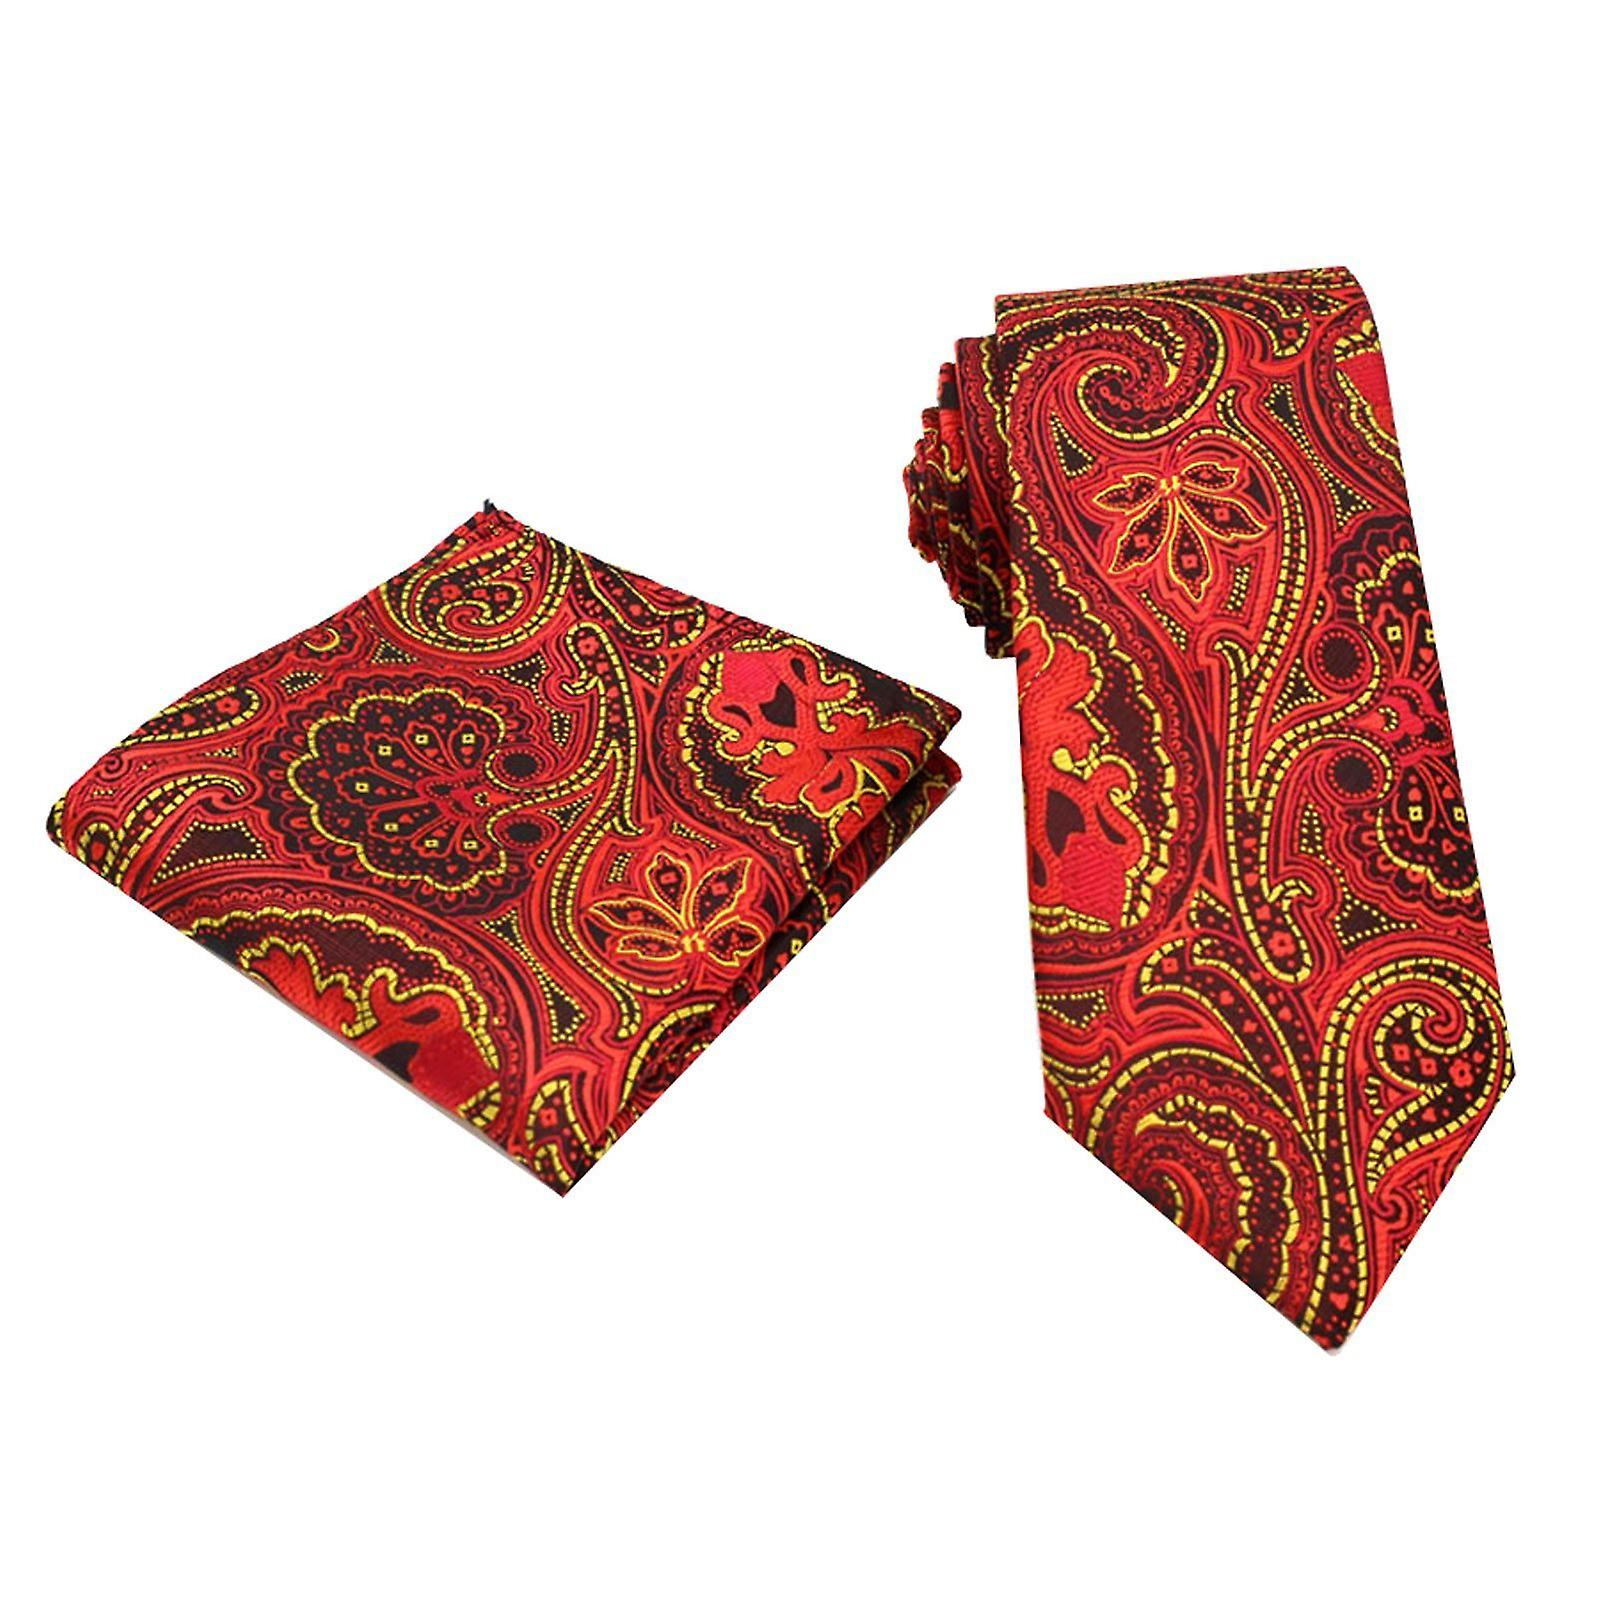 Bright red & yellow patterned pocket square & tie set